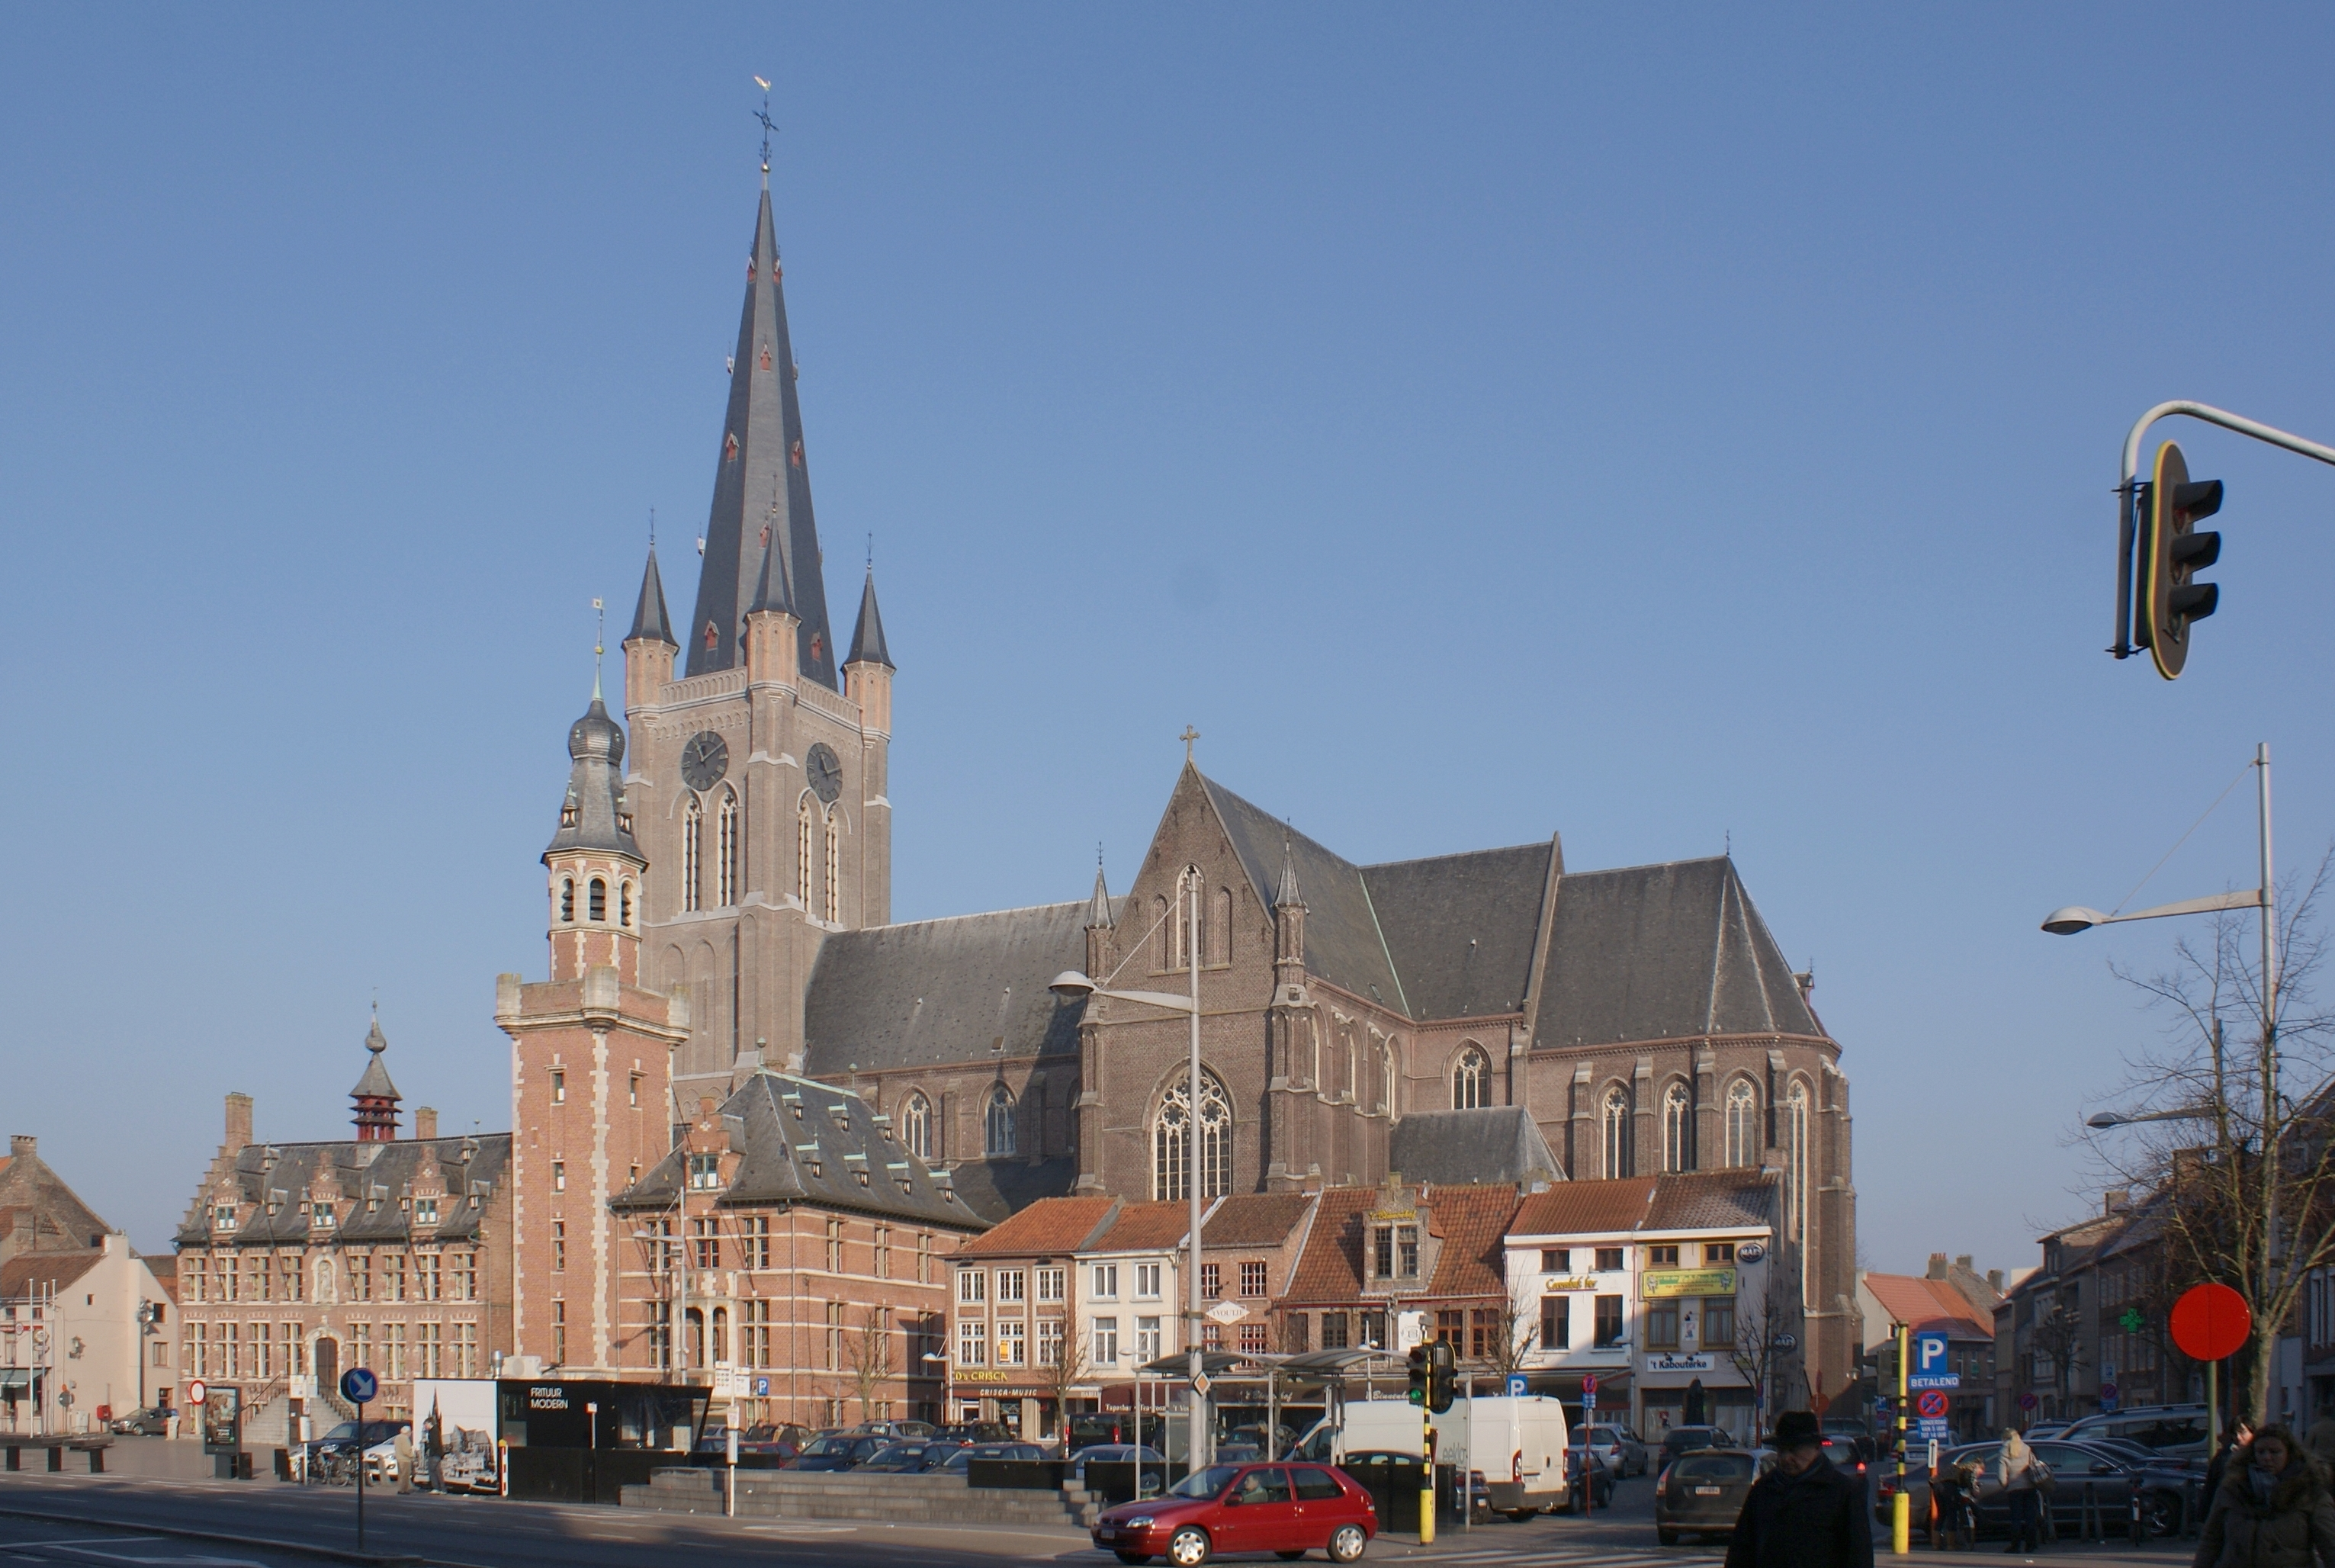 Eeklo City Hall, church and market square